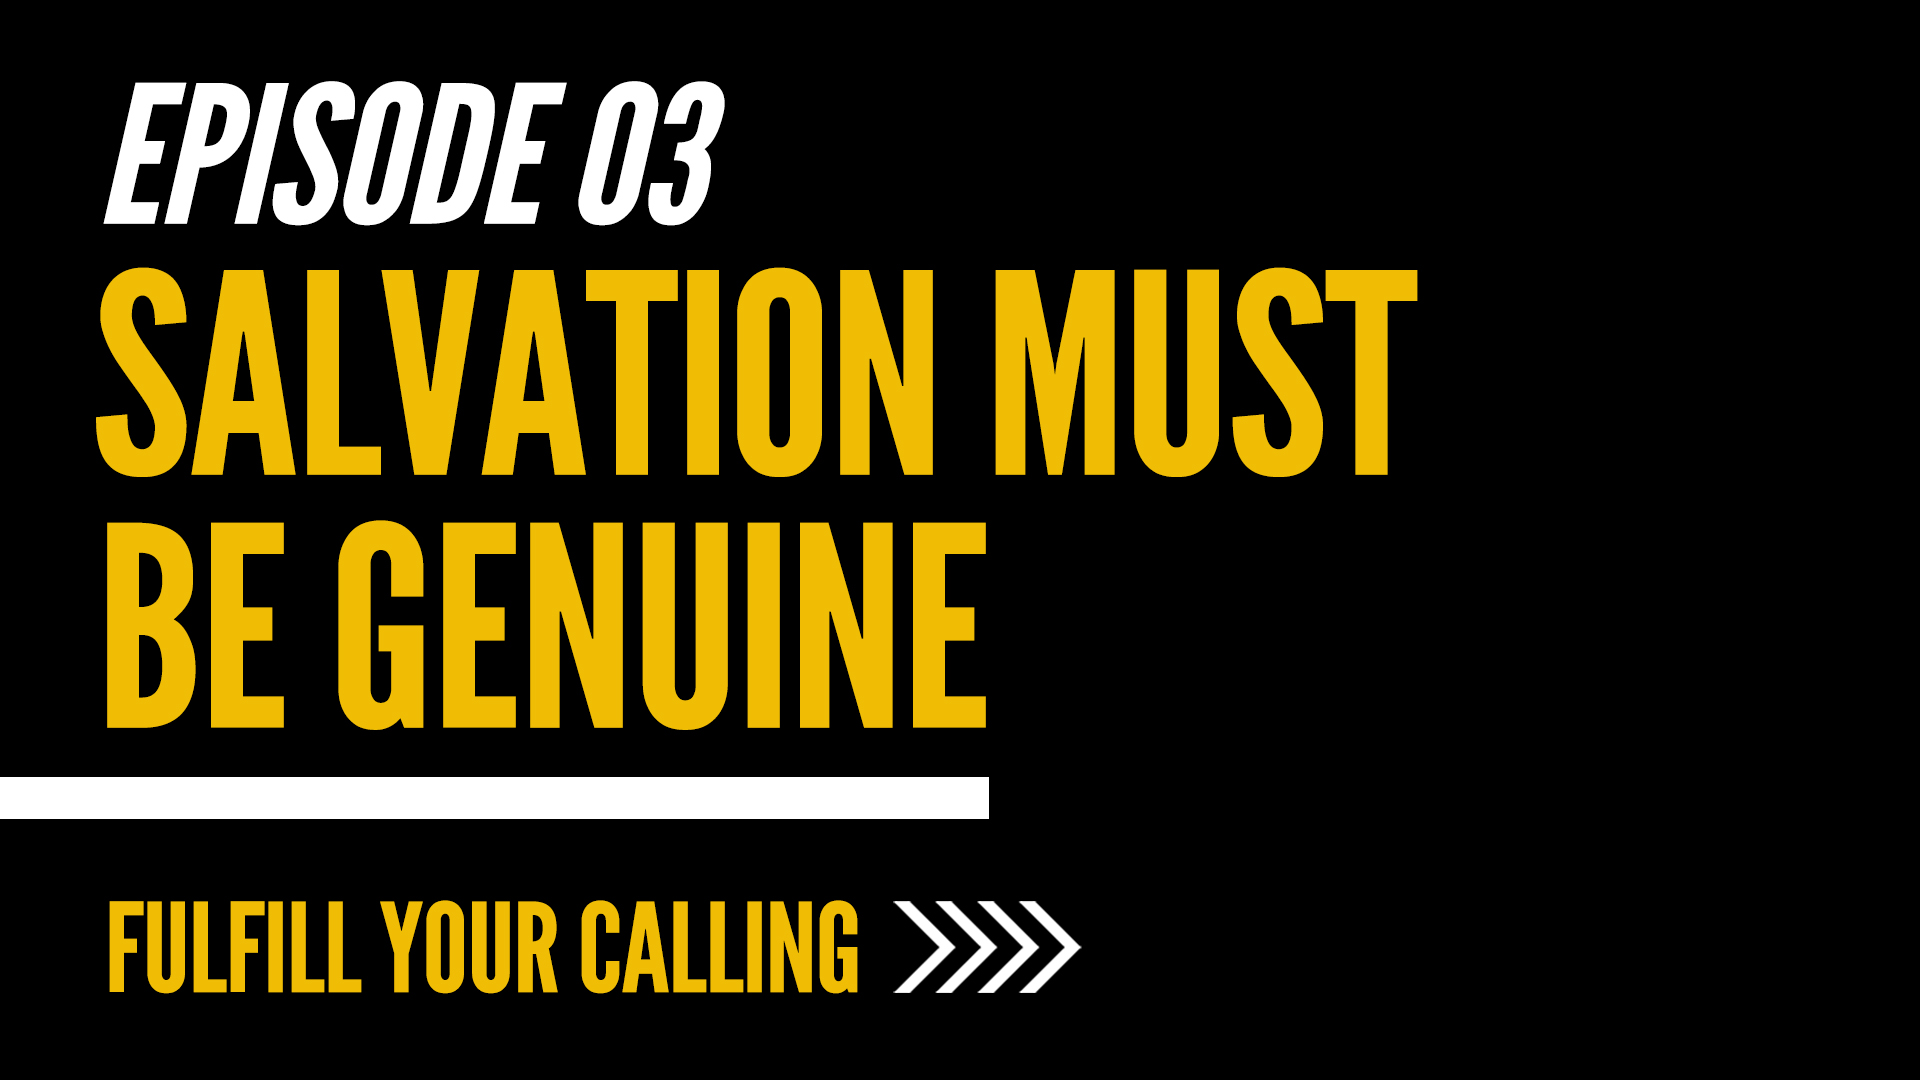 How to Fulfill Your Calling - Episode 3 with David Steele